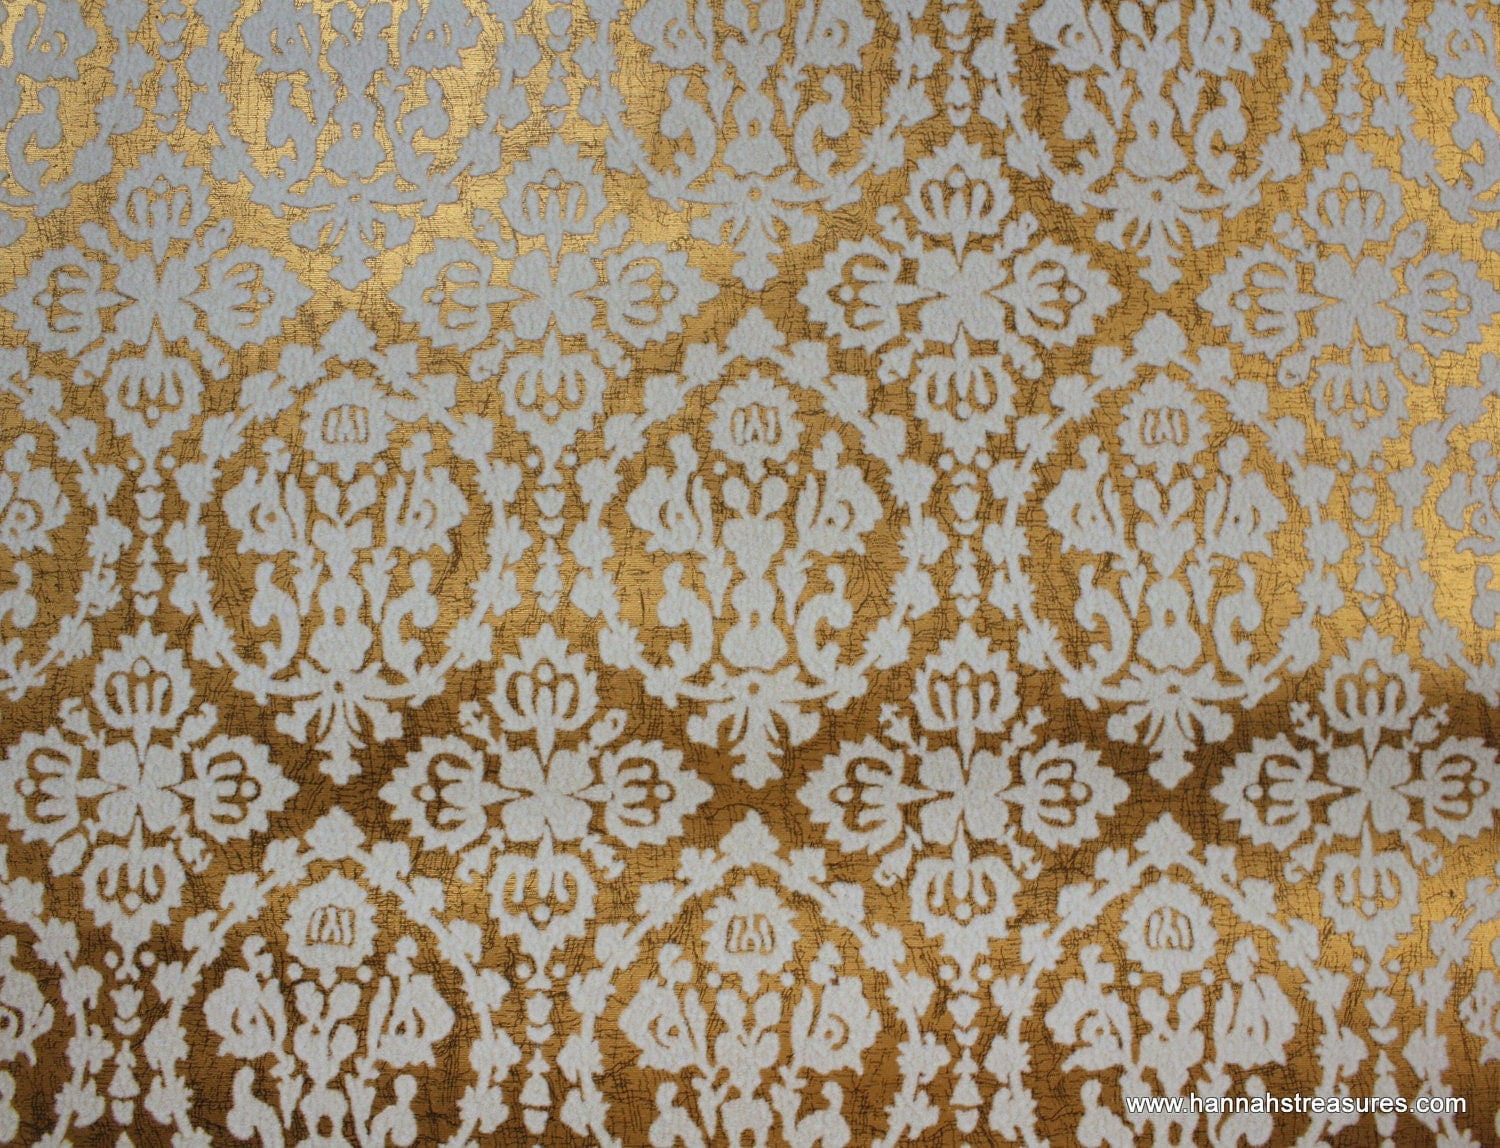 1970 39 s vintage wallpaper white flocked damask on metallic